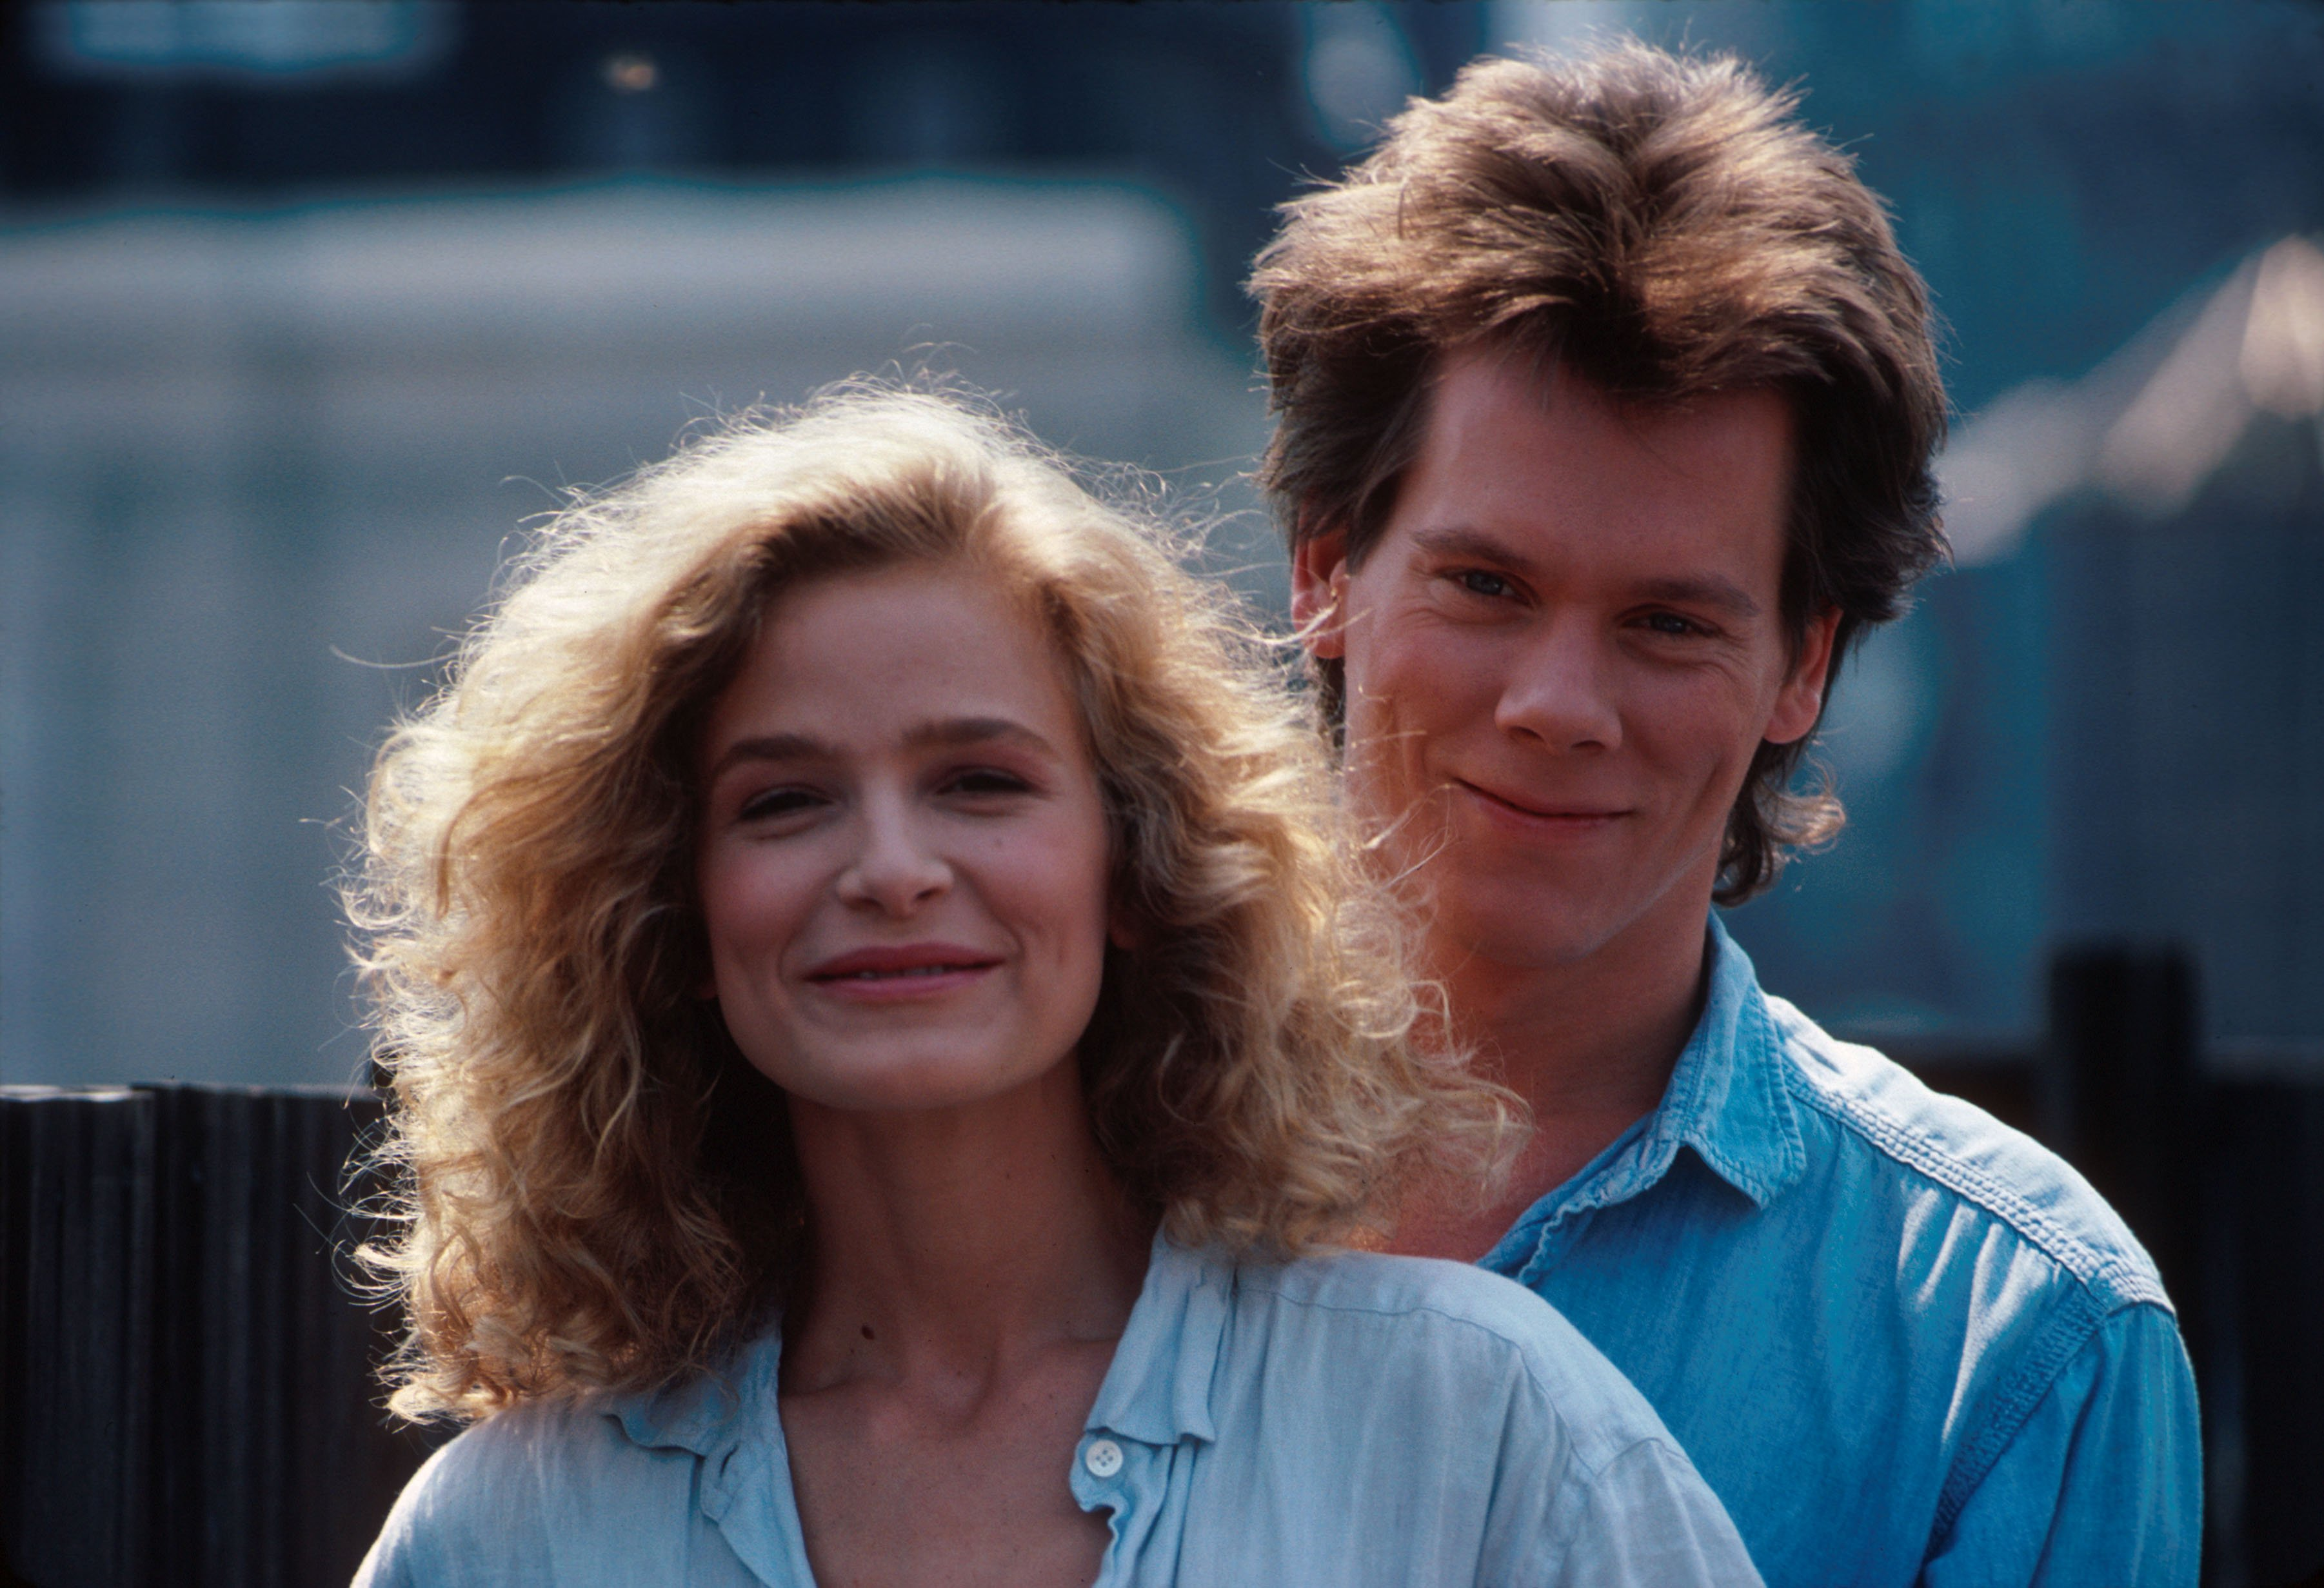 Junge Kevin Bacon und Kyra Sedgwick | Quelle: Getty Images